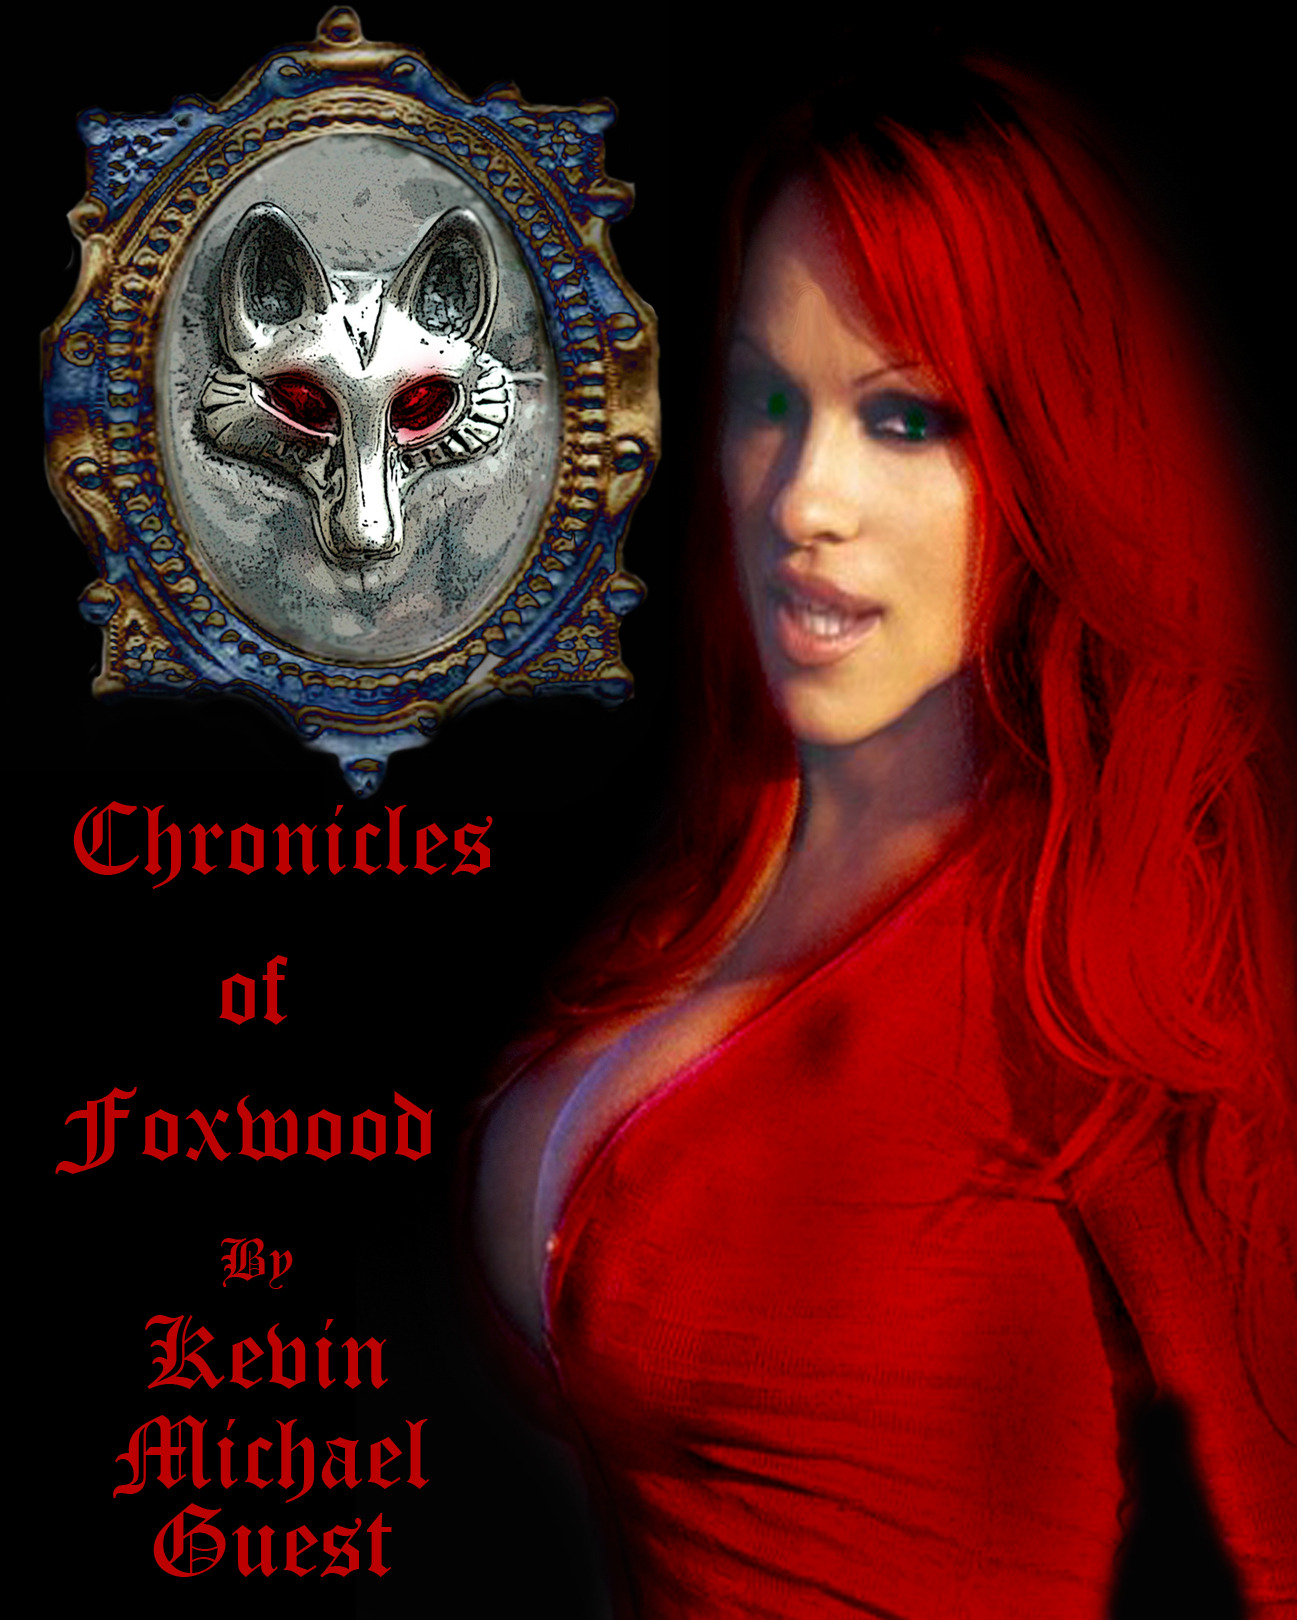 The Chronicles of Foxwood